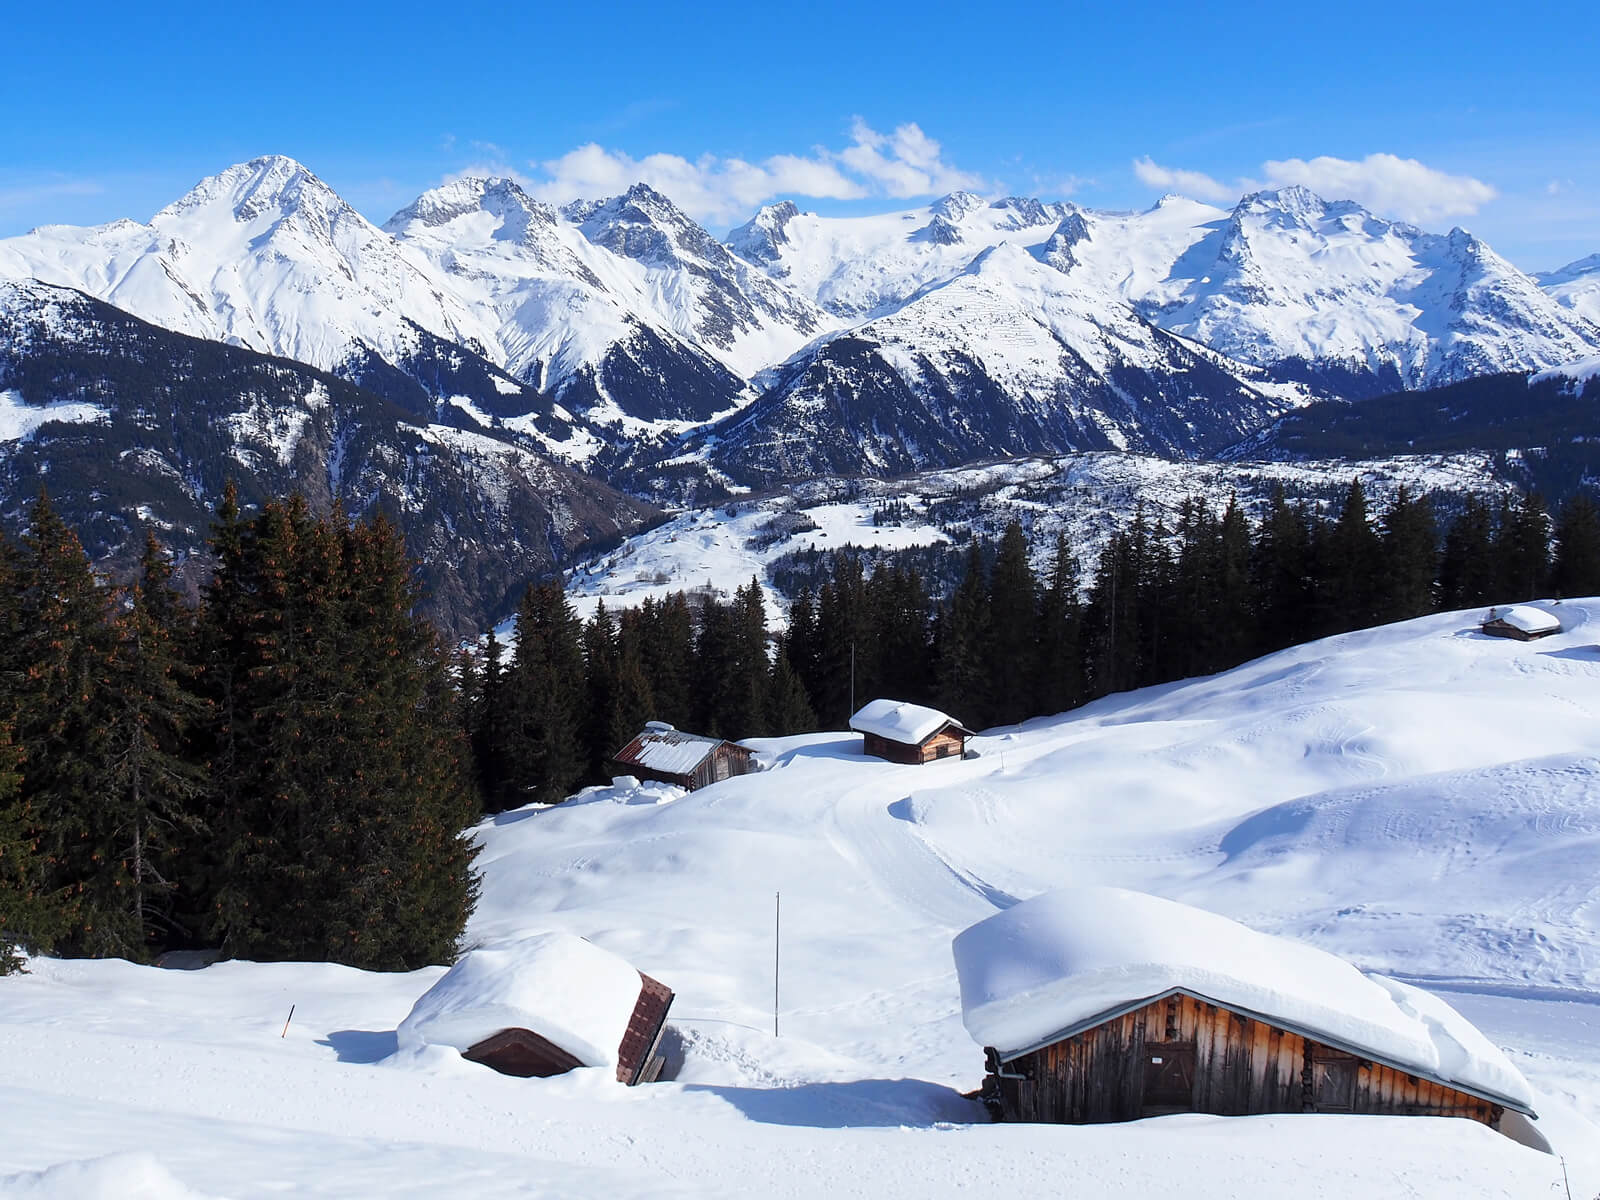 View of the Disentis Ski Resort in March 2021